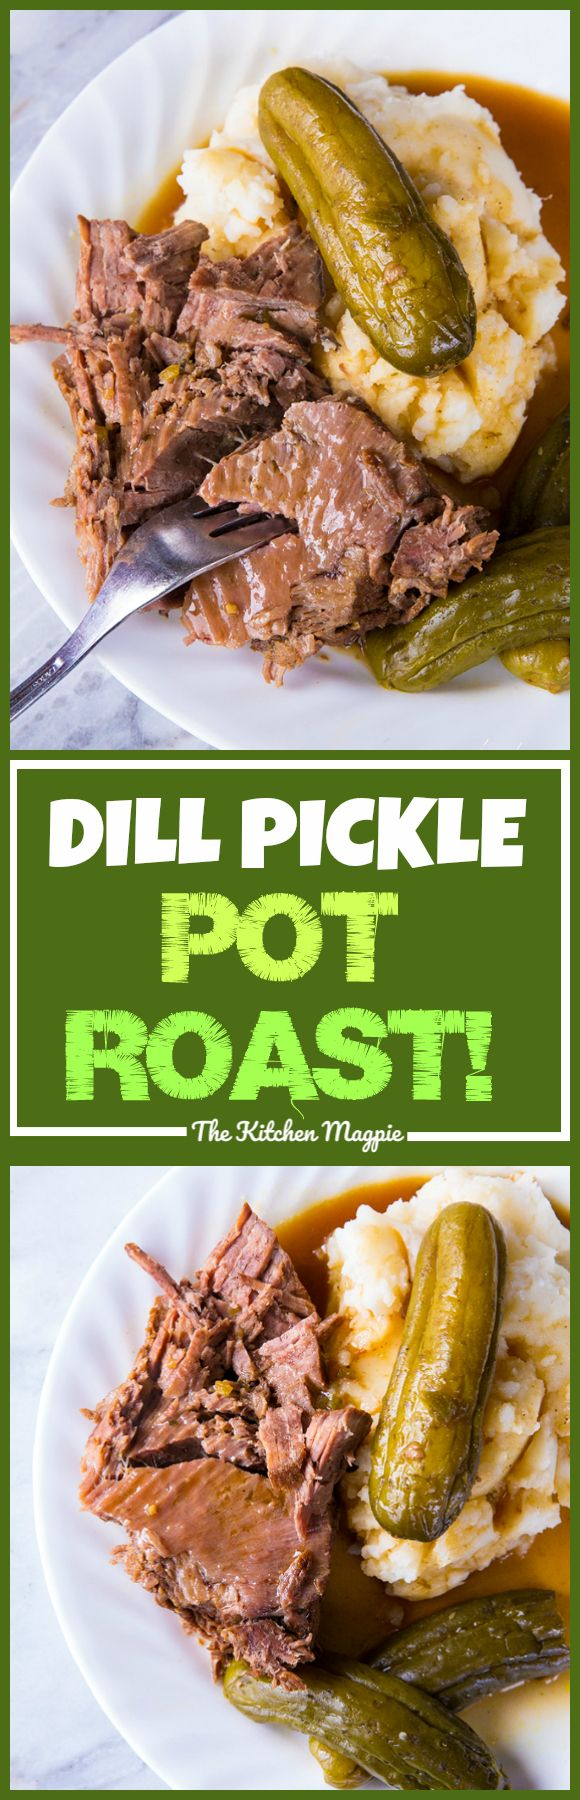 DILL PICKLE POT ROAST & PICKLE GRAVY! If you love pickles you are going to flip for this pot roast! Similar to the Mississippi Pot Roast but NOT spicy and infused with a fabulous pickle taste! Even the gravy is spectacular! Recipe from @kitchenmagpie #slo